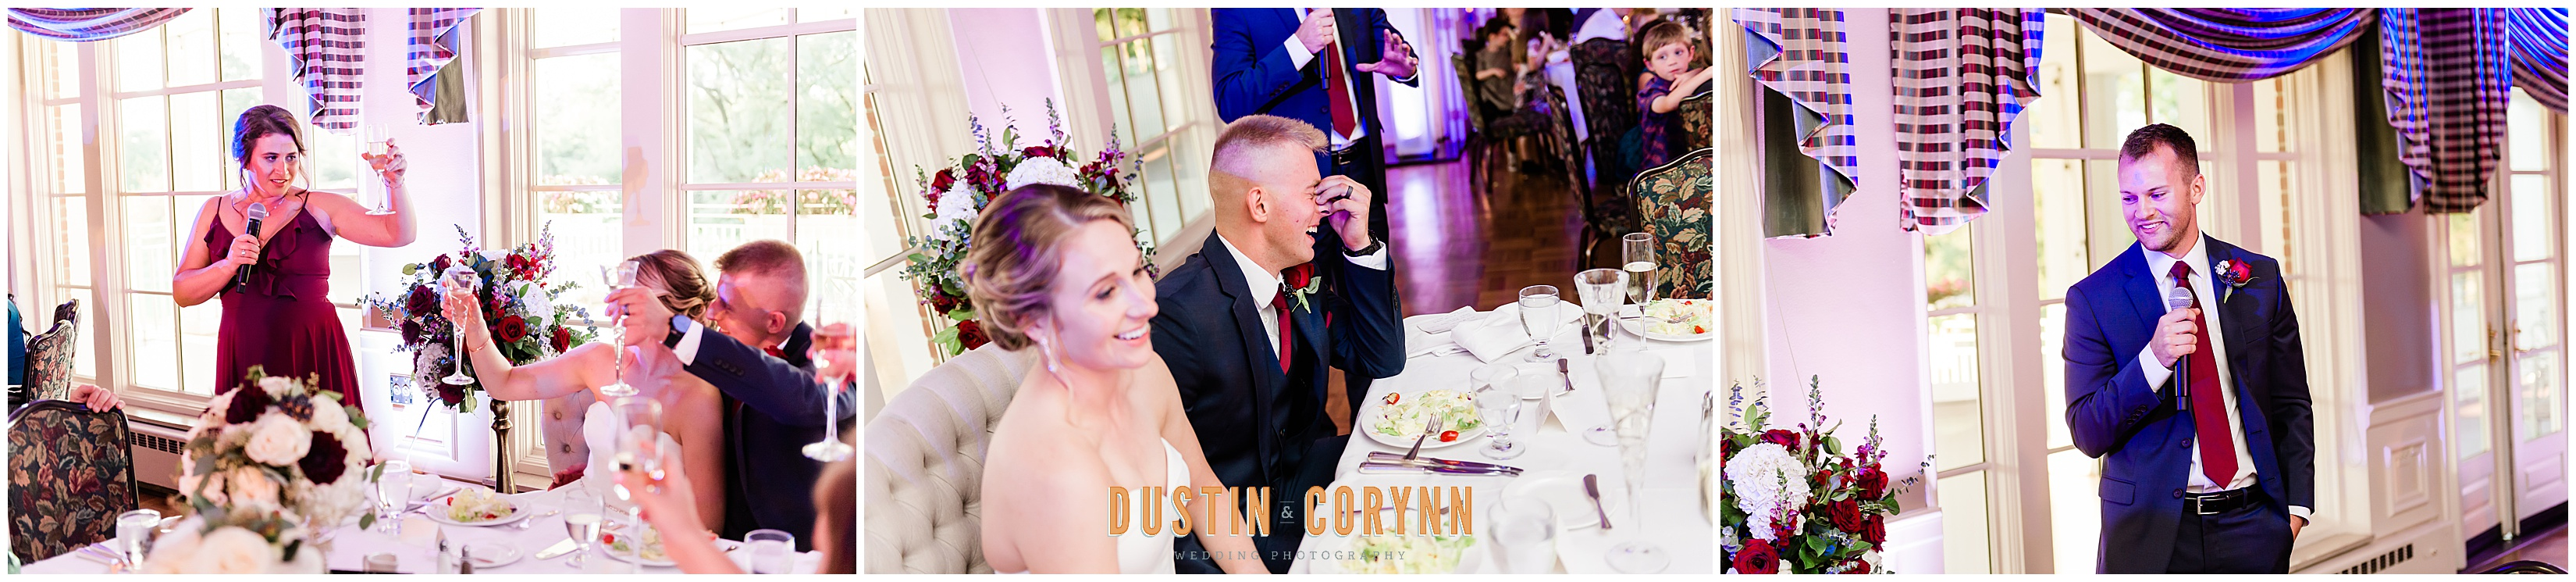 Best Man and Maid of Honor Toasts at Fort Wayne Country Club Wedding